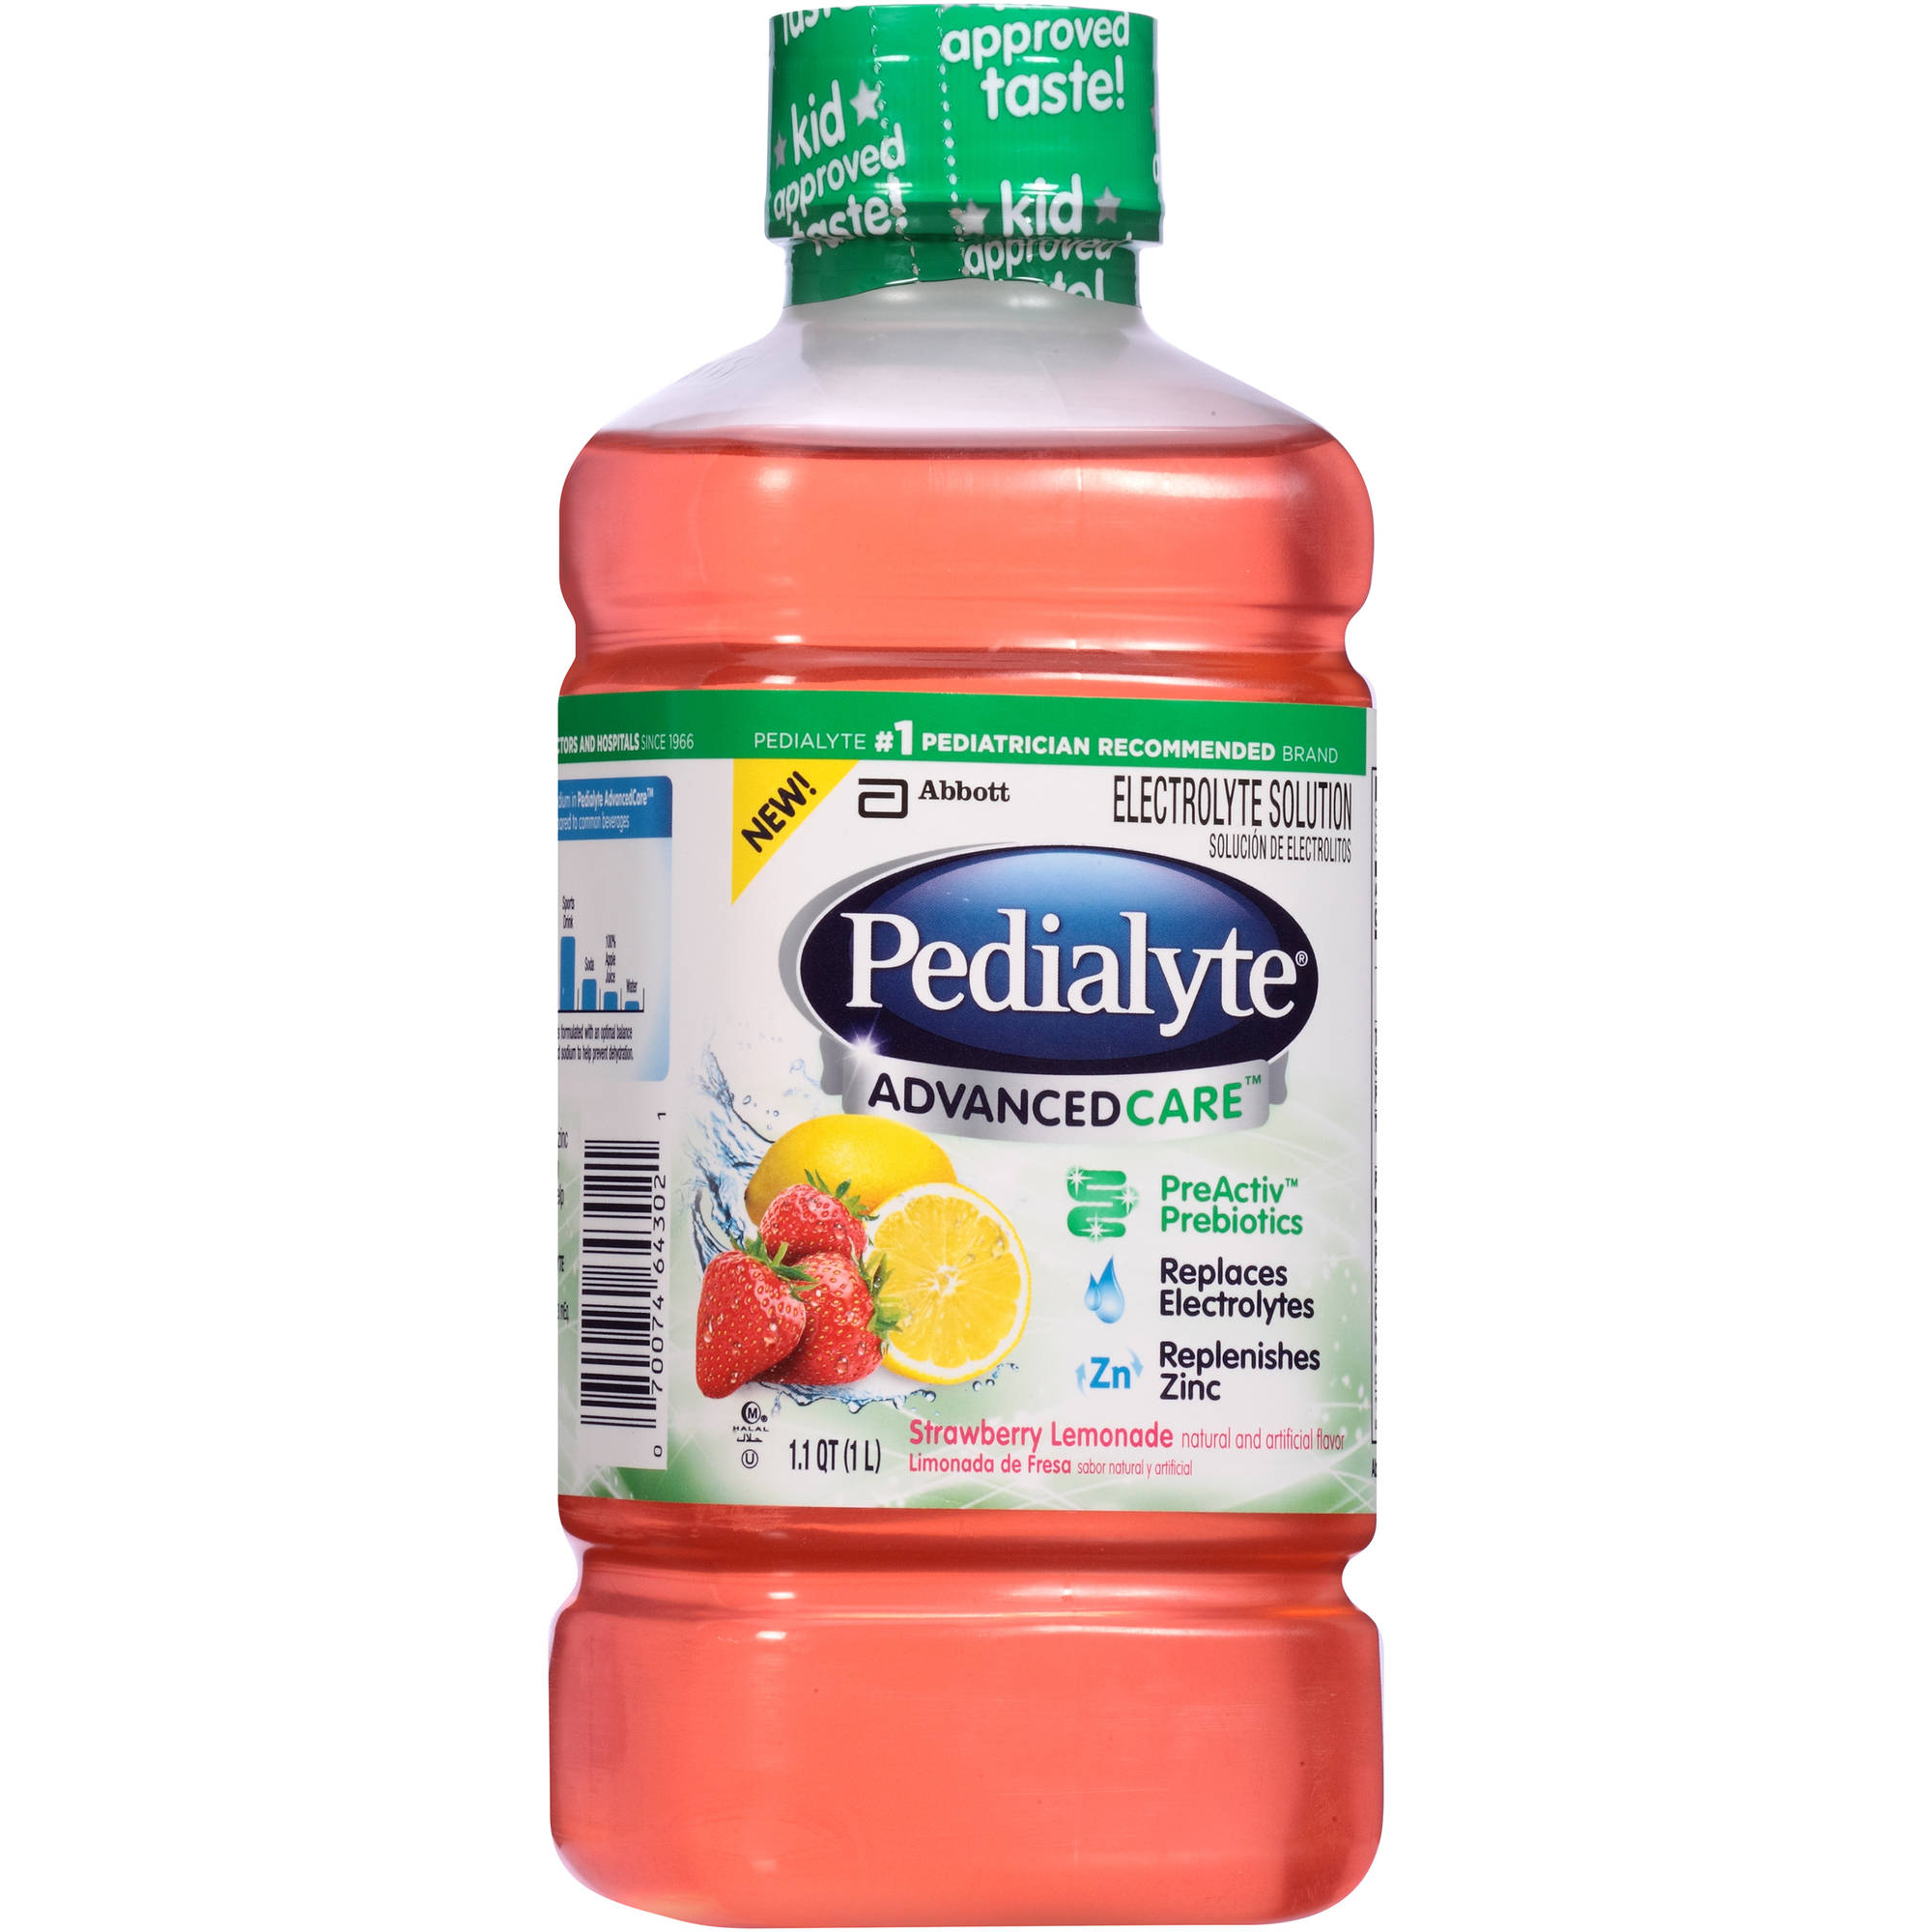 Pedialyte AdvancedCare Strawberry Lemonade Electrolyte Solution, 1.1 qt